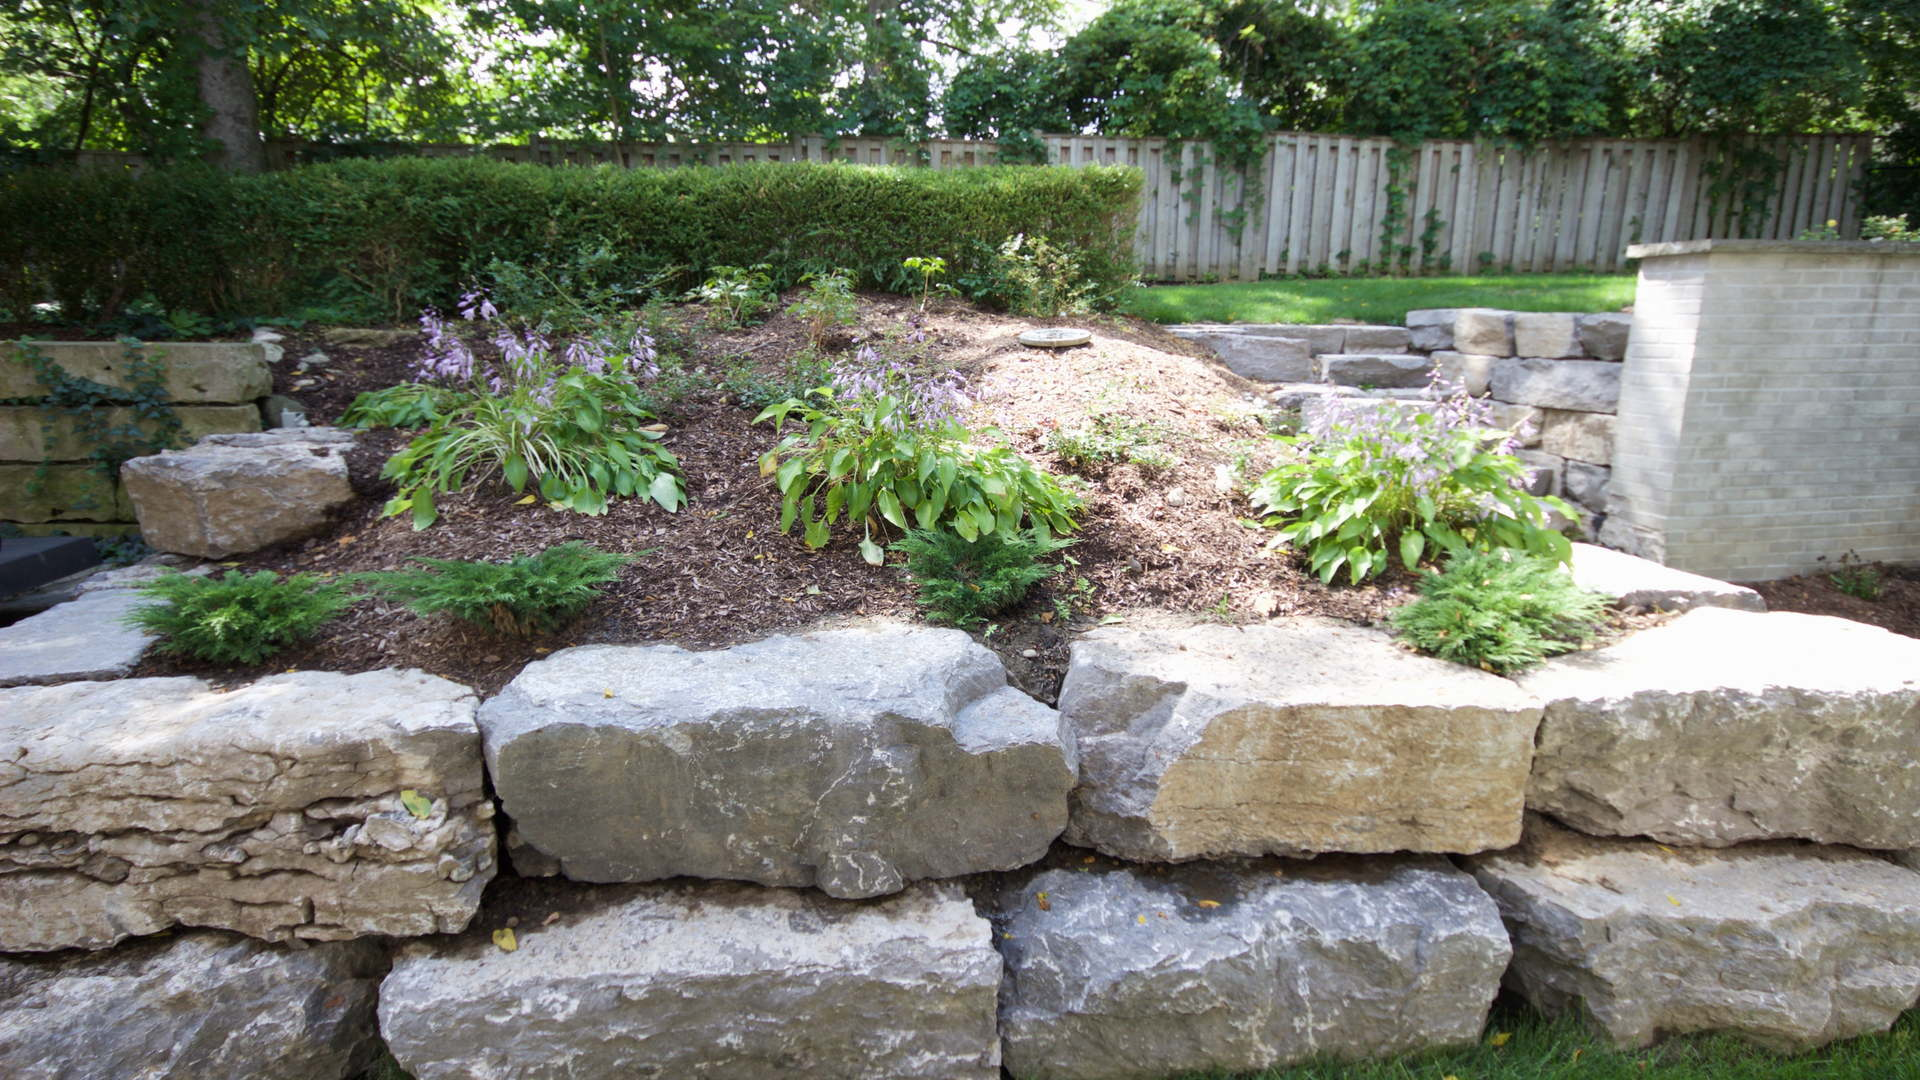 Natural garden with large armour stone retaining wall, various hostas and pine mulch. Traditional landscaping / hardscaping project in London Ontario.